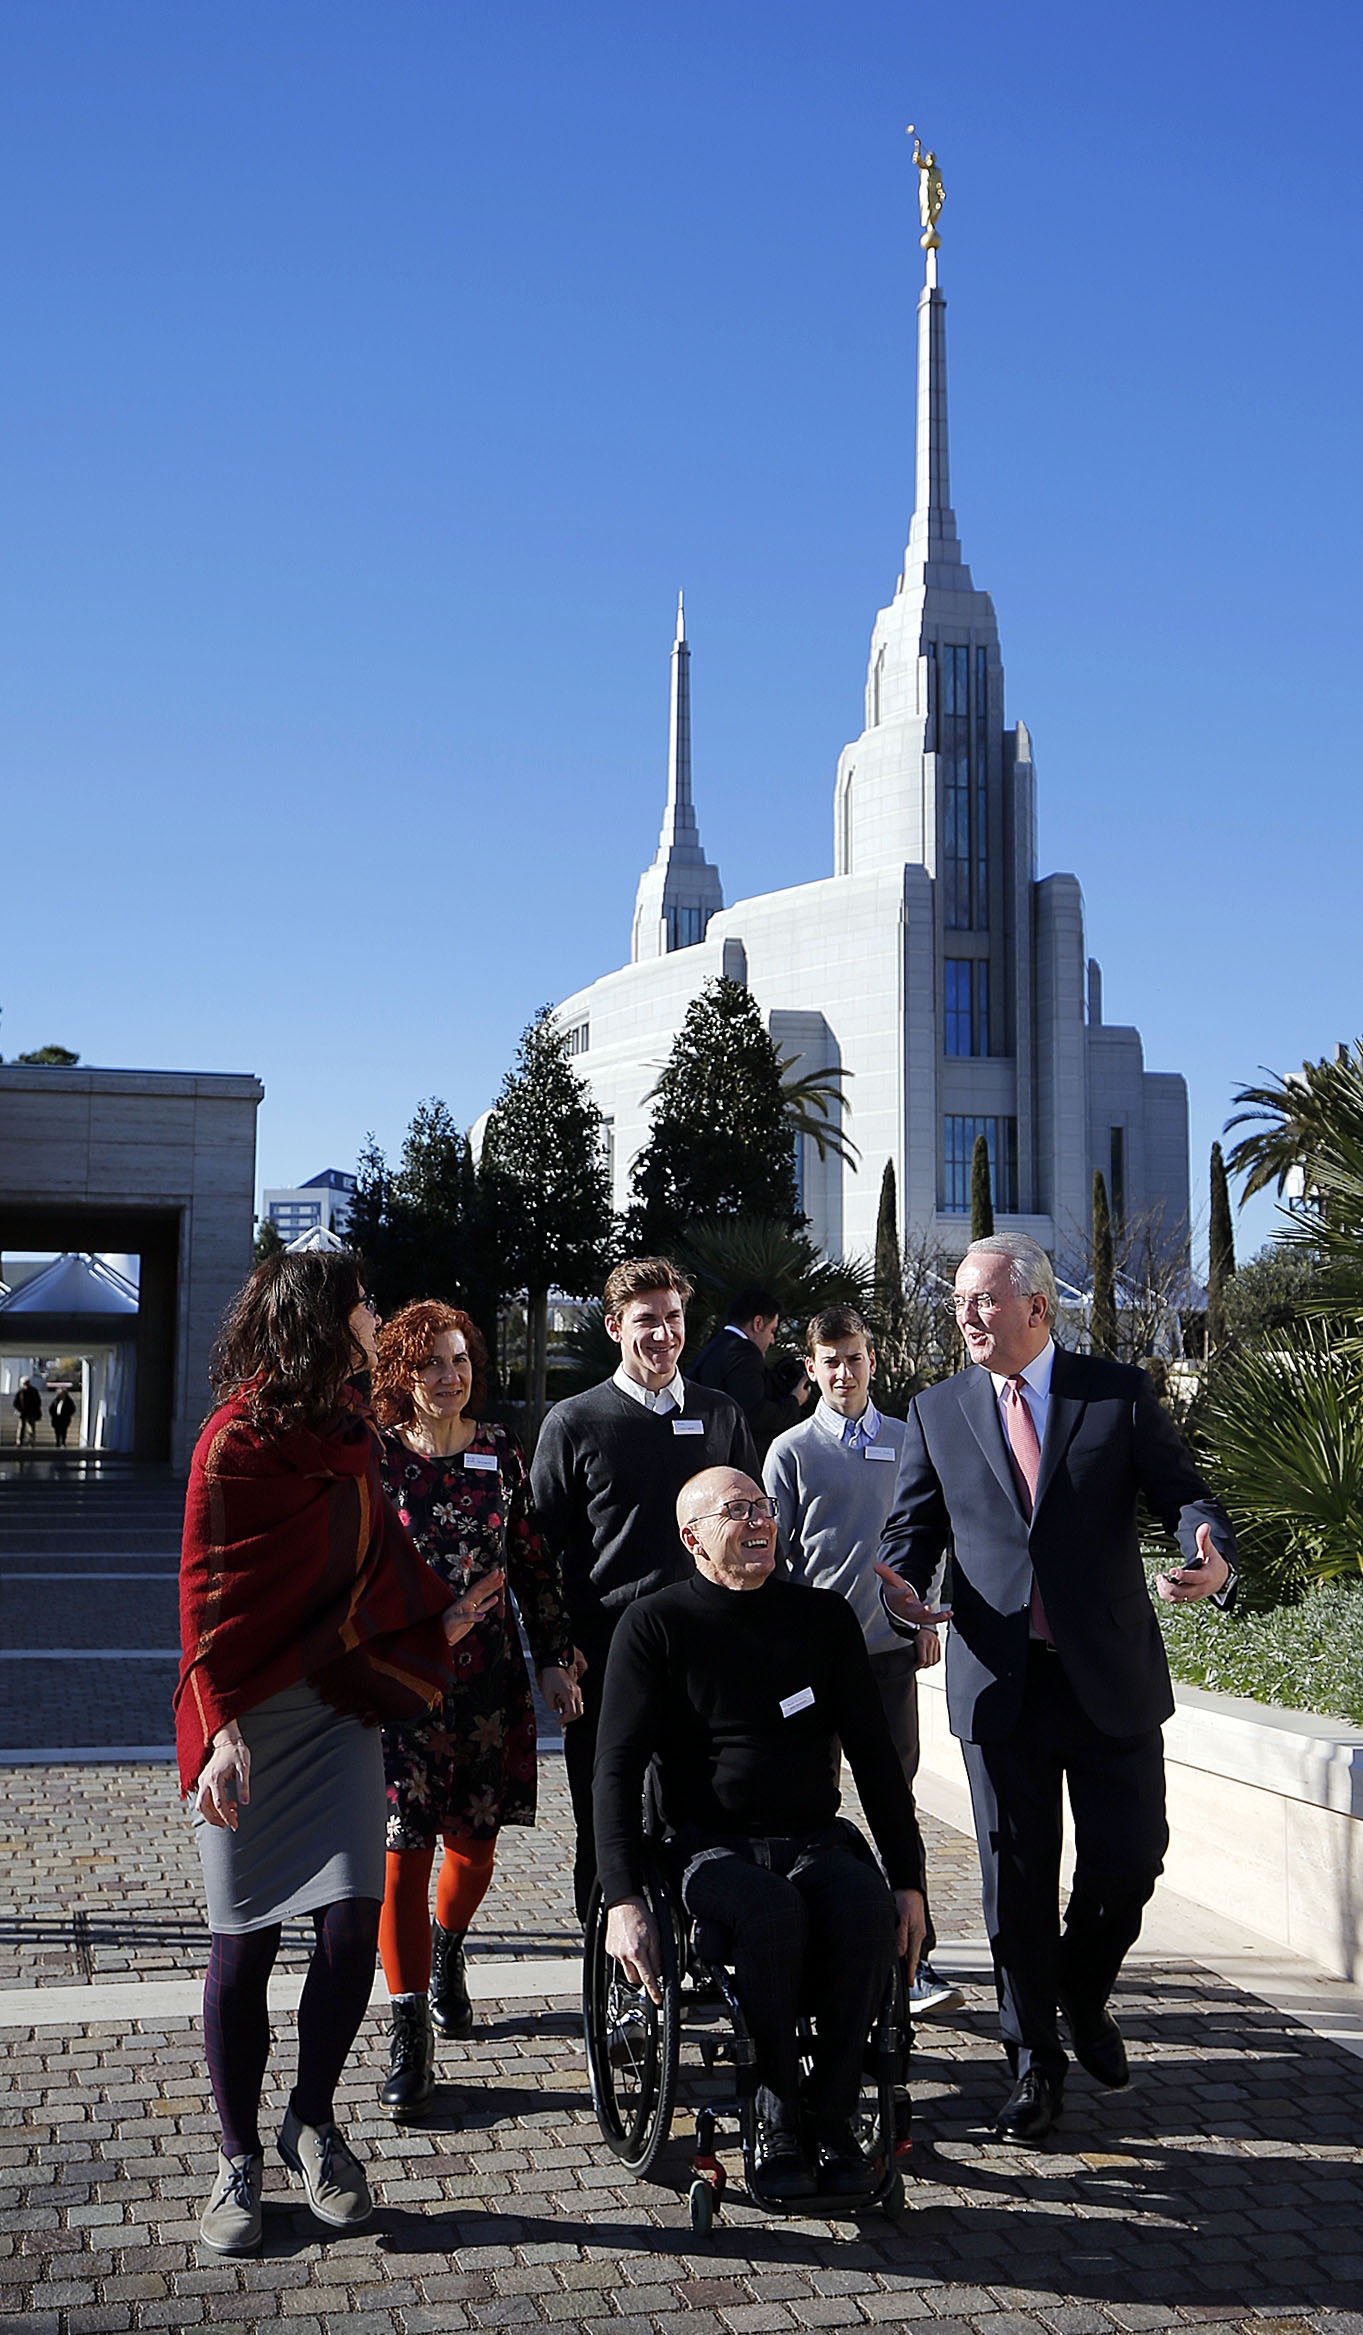 Elder Jack N. Gerard, right, of The Church of Jesus Christ of Latter-day Saints, leads Paralympian Paolo Cecchetto and his family on a tour of the Rome Italy Temple and grounds on Tuesday, Jan. 15, 2019.